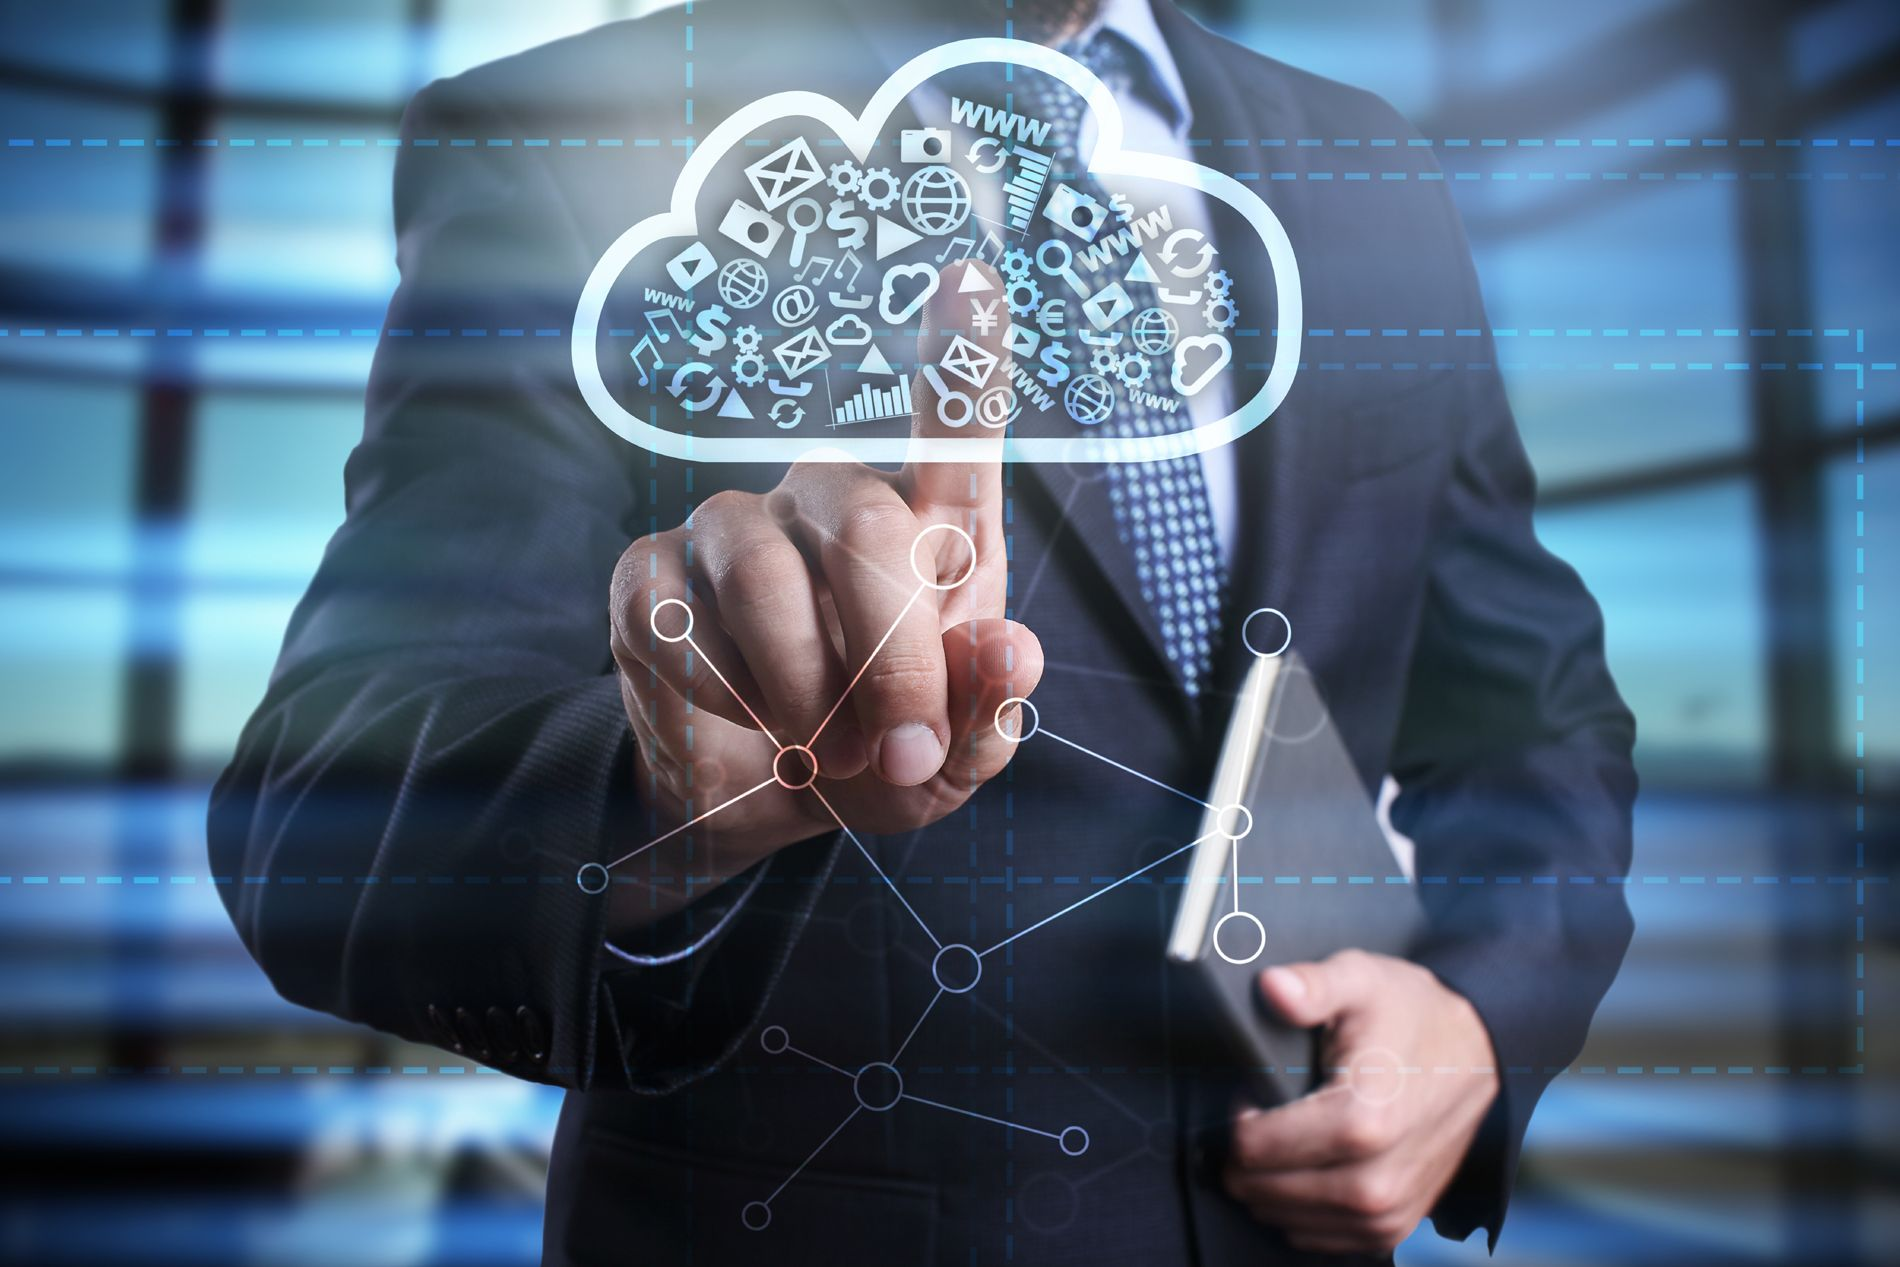 Why Use Serverless Computing? – Advantages and Disadvantages of Serverless